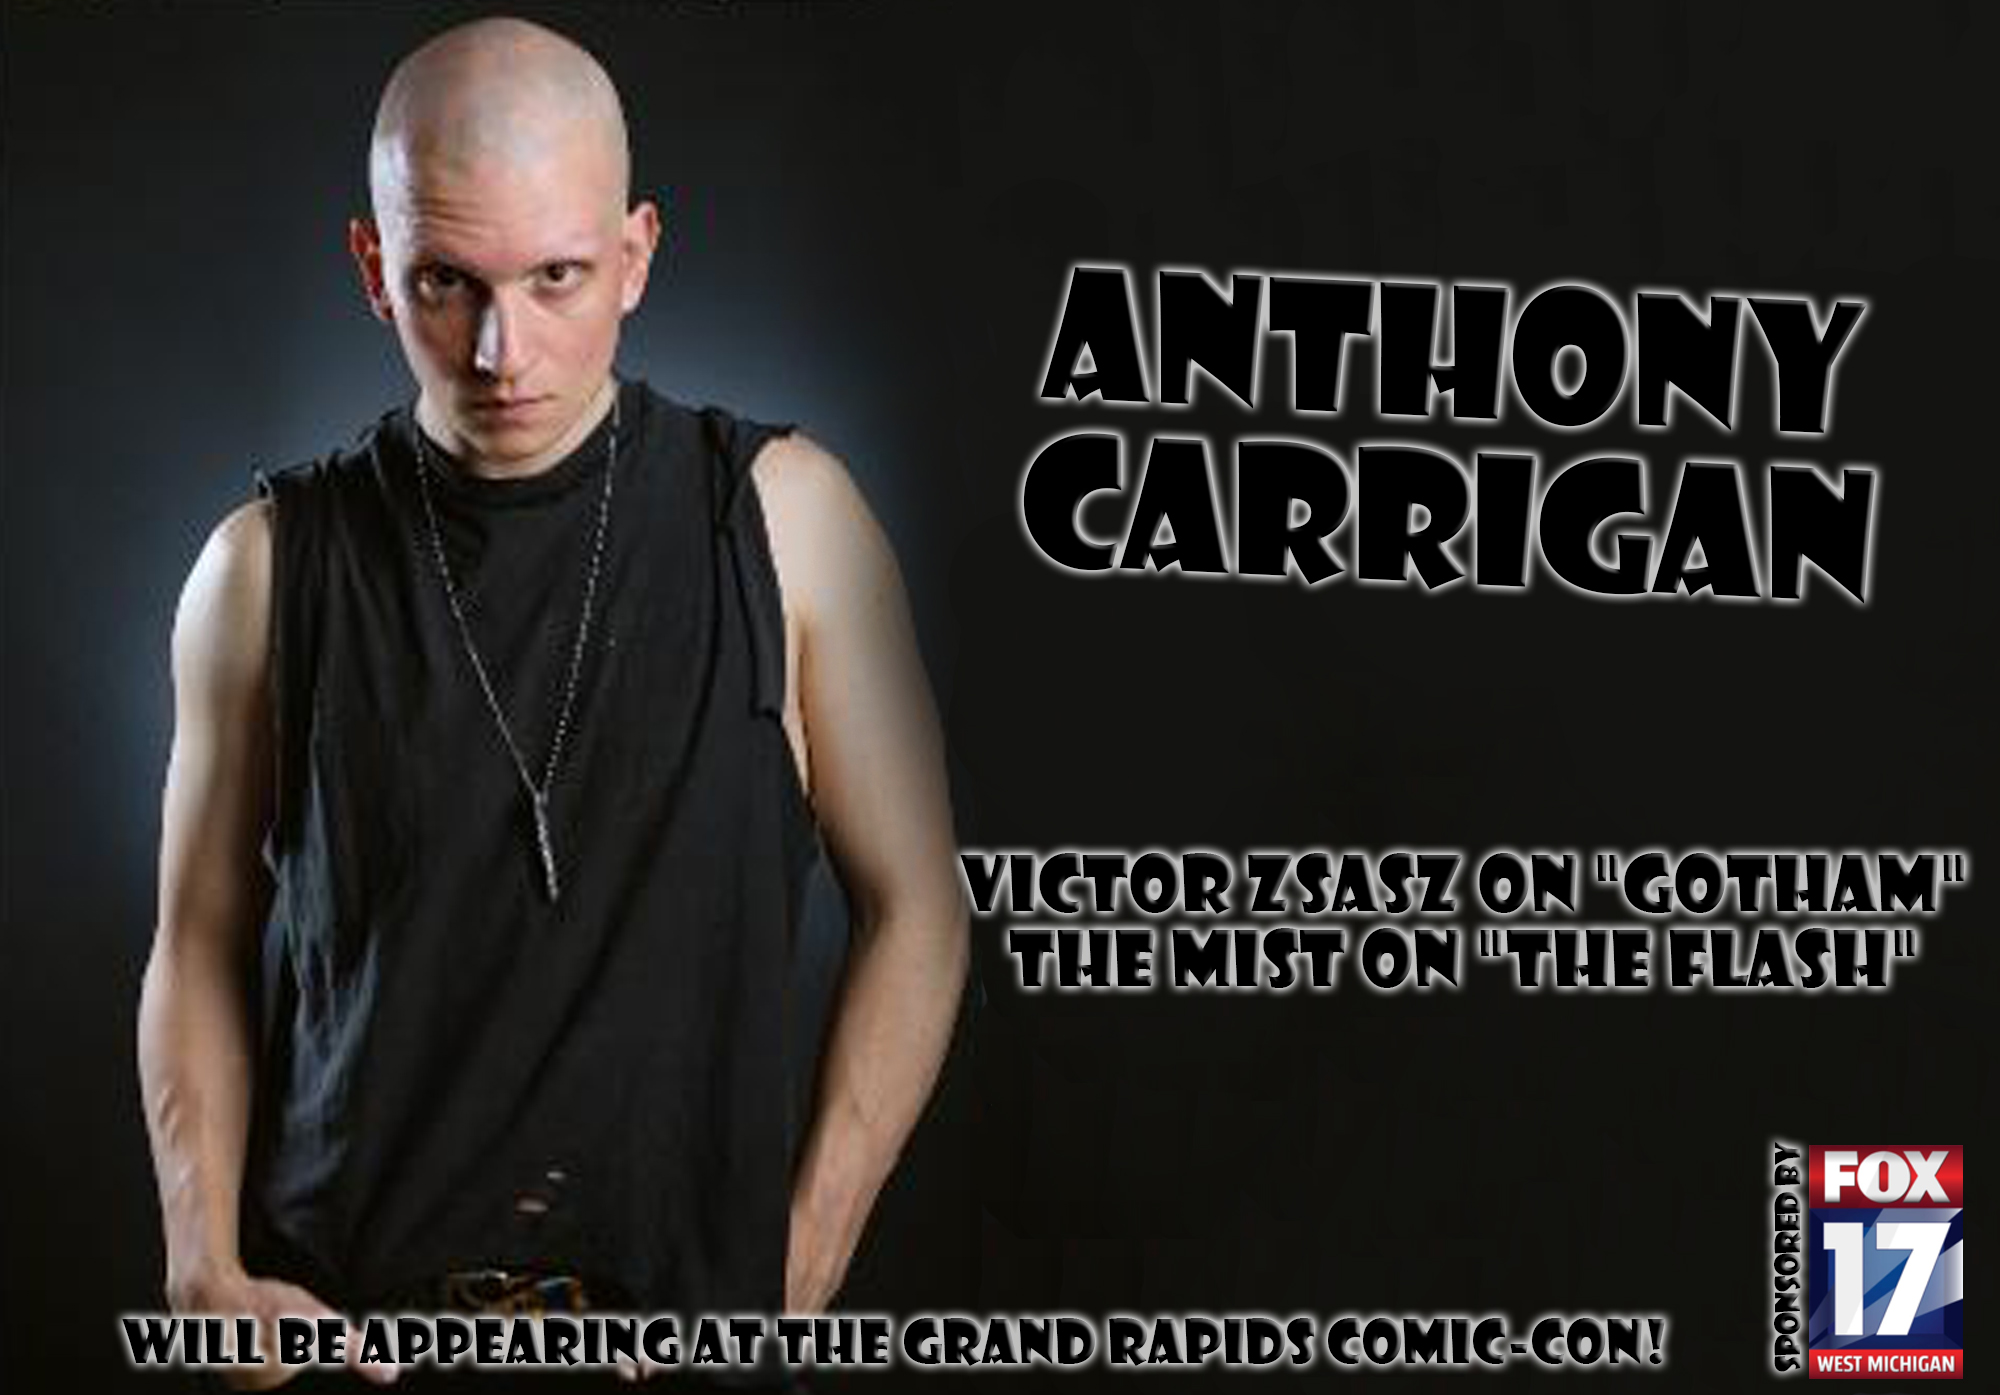 anthony carrigan bio